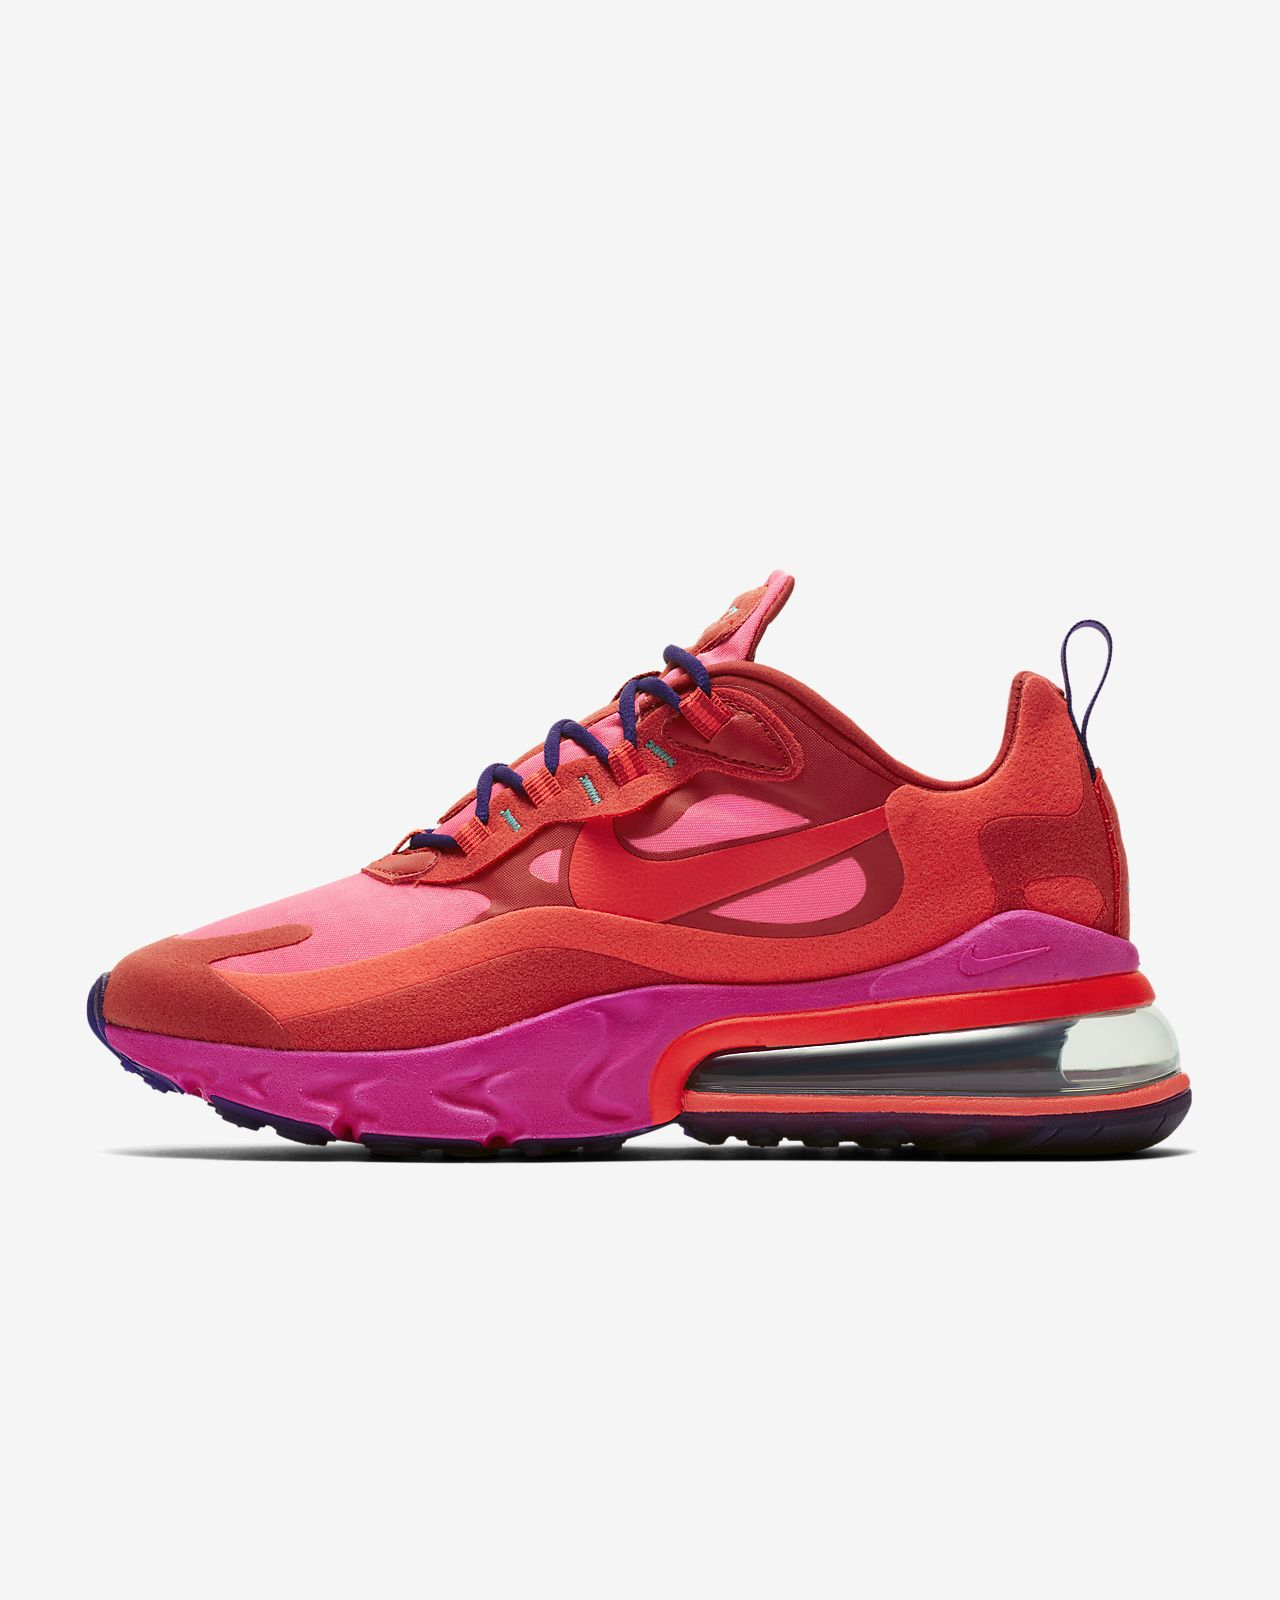 nike air max 270 react price in usa